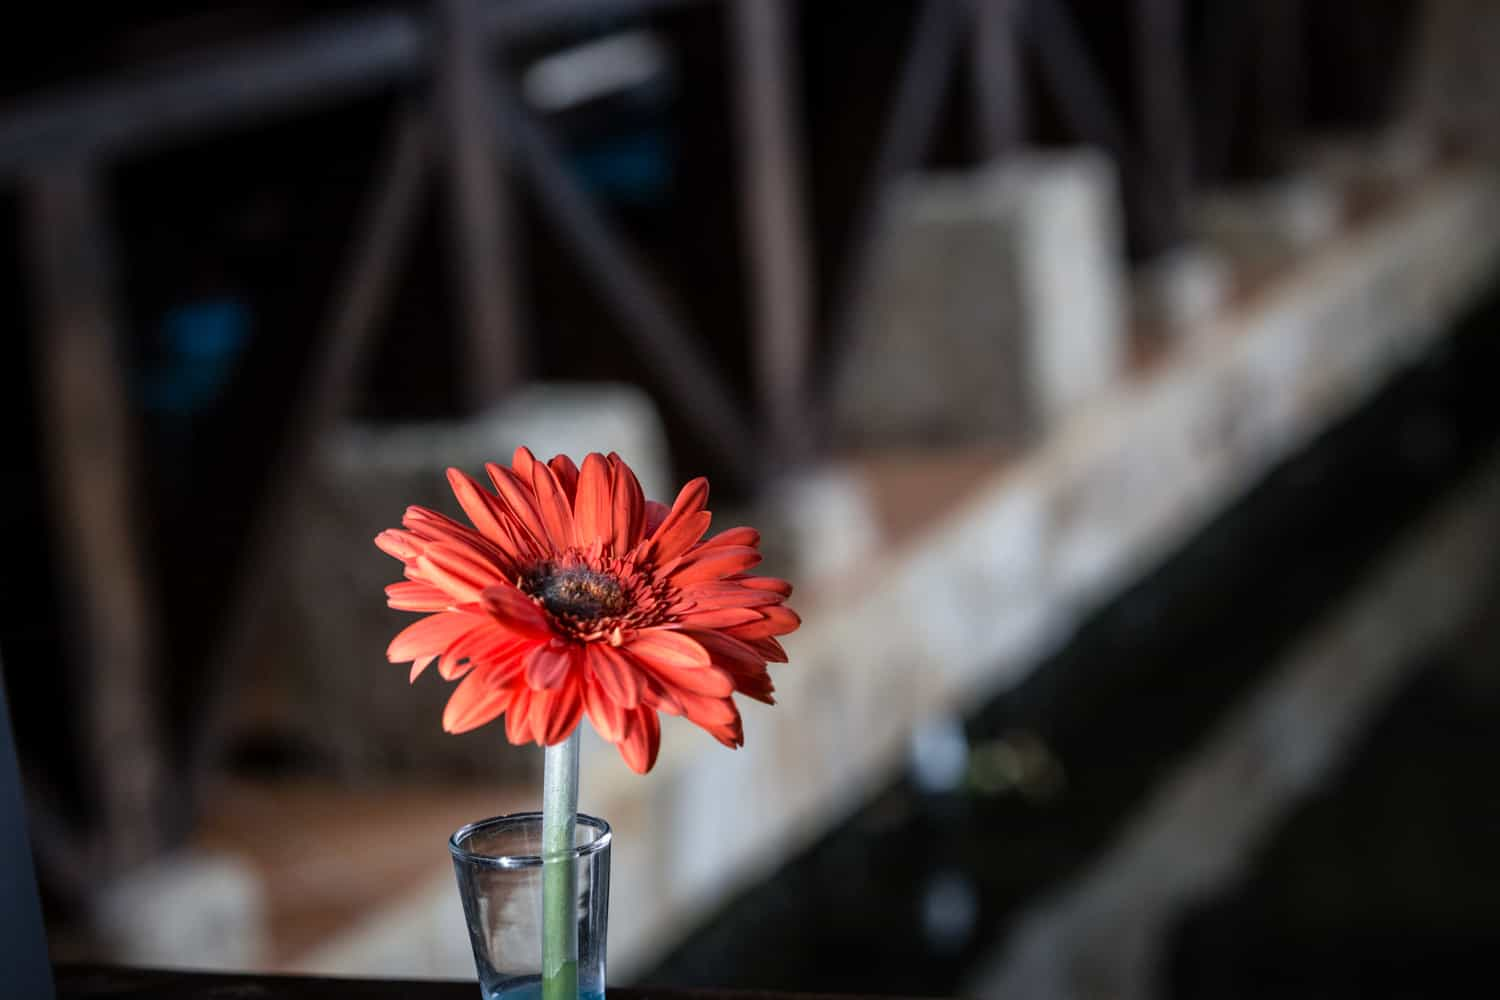 Flower on table in great venue for wedding reception at Rio Celeste Hideaway Hotel.